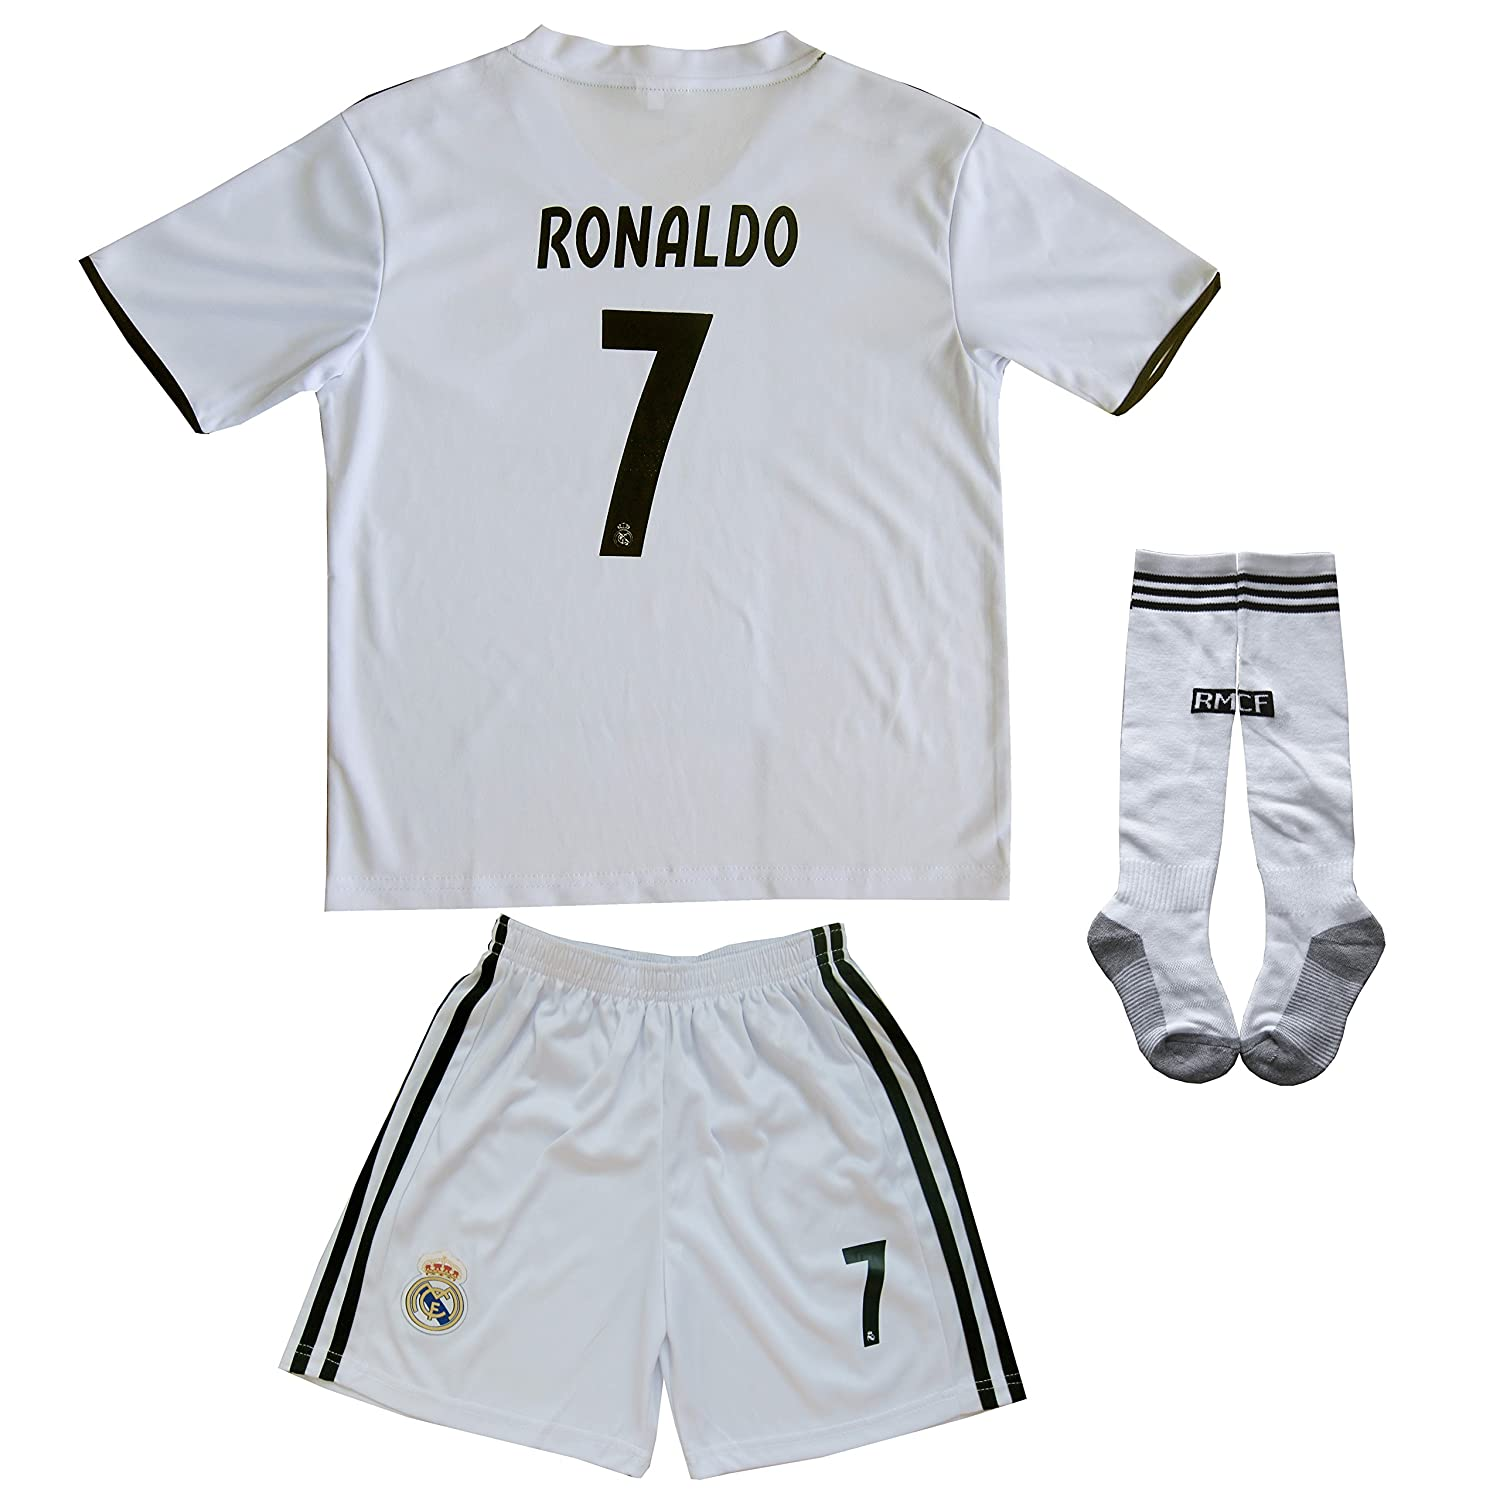 2015/2016 REAL MADRID #7 RONALDO KIDS HOME SOCCER JERSEY & SHORTS YOUTH SIZES (12-13 YEARS OLD) FCRM